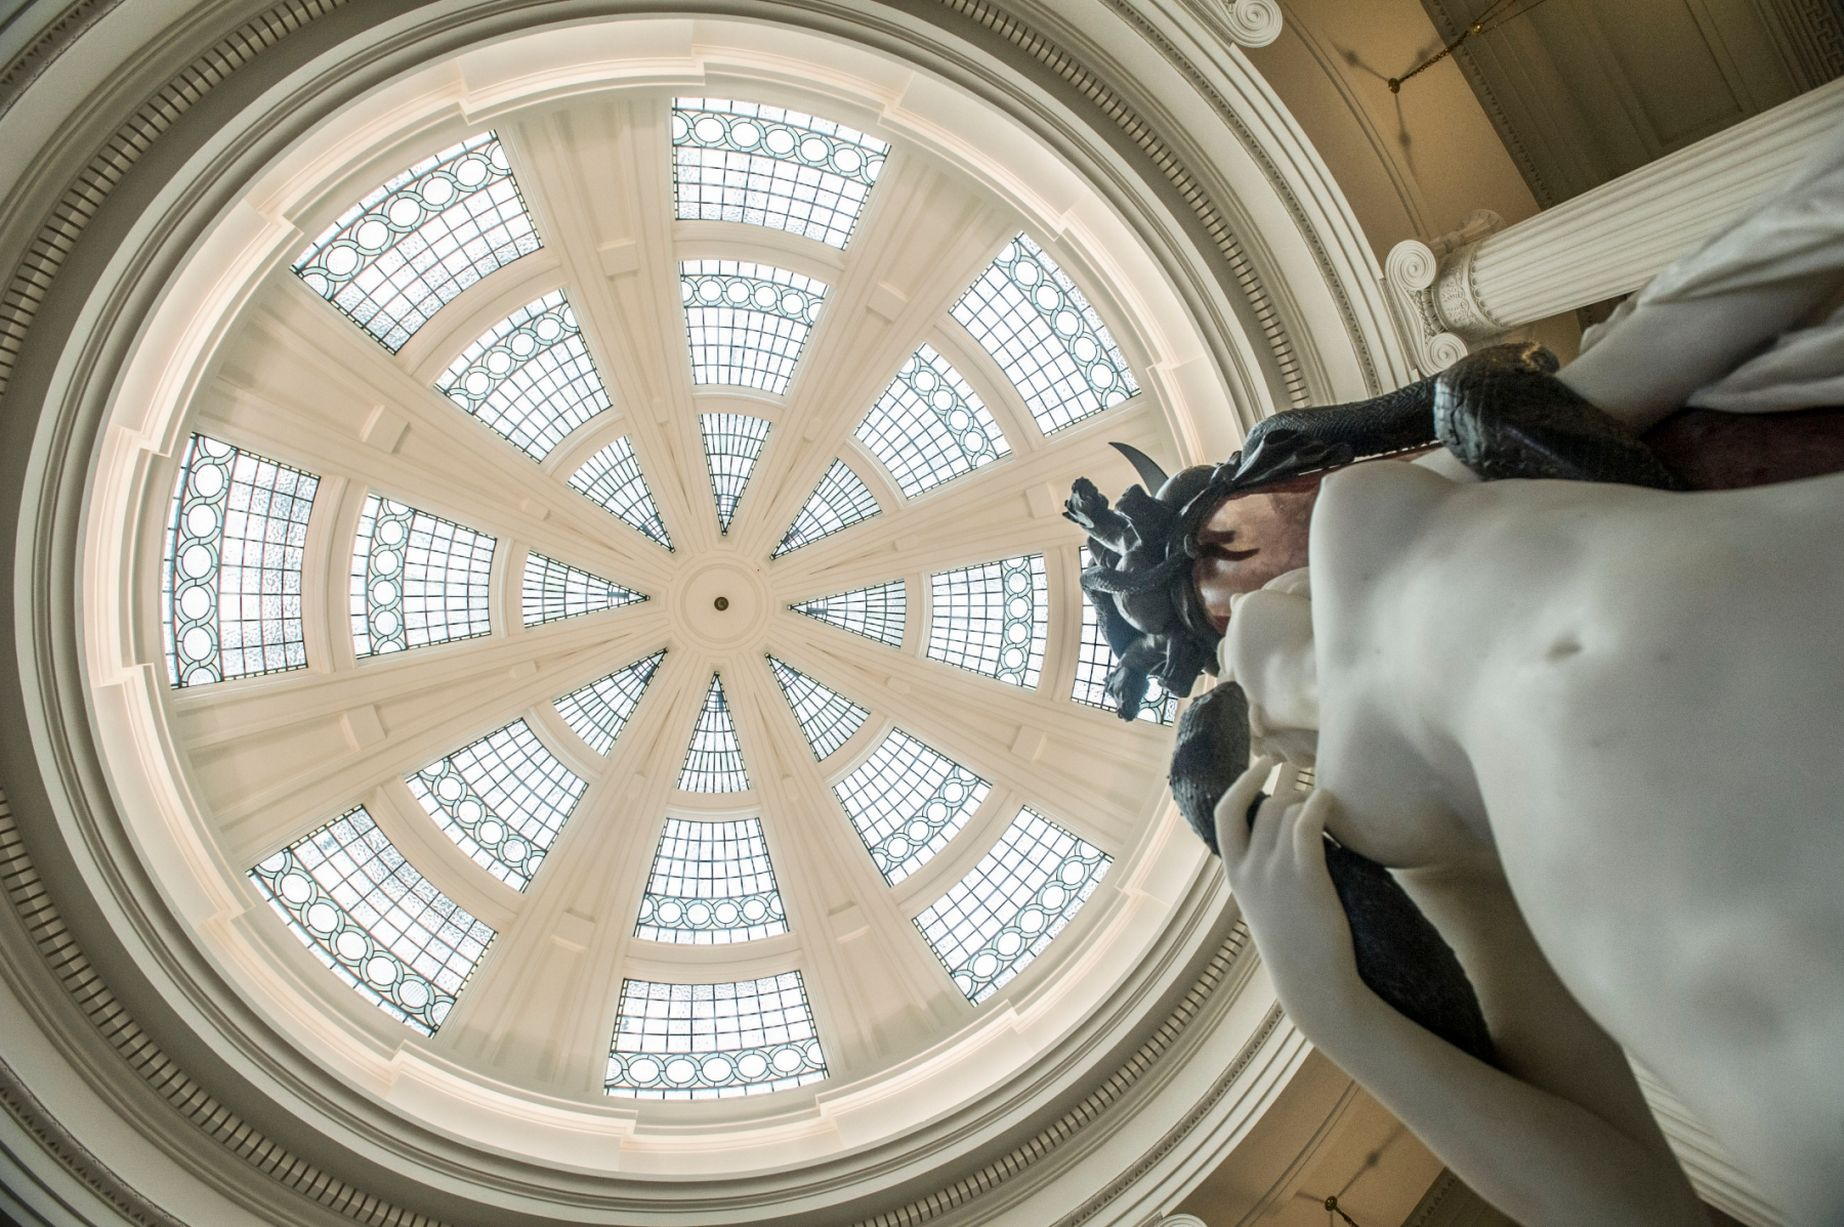 Lady Lever Art Gallery - National Museums Liverpool